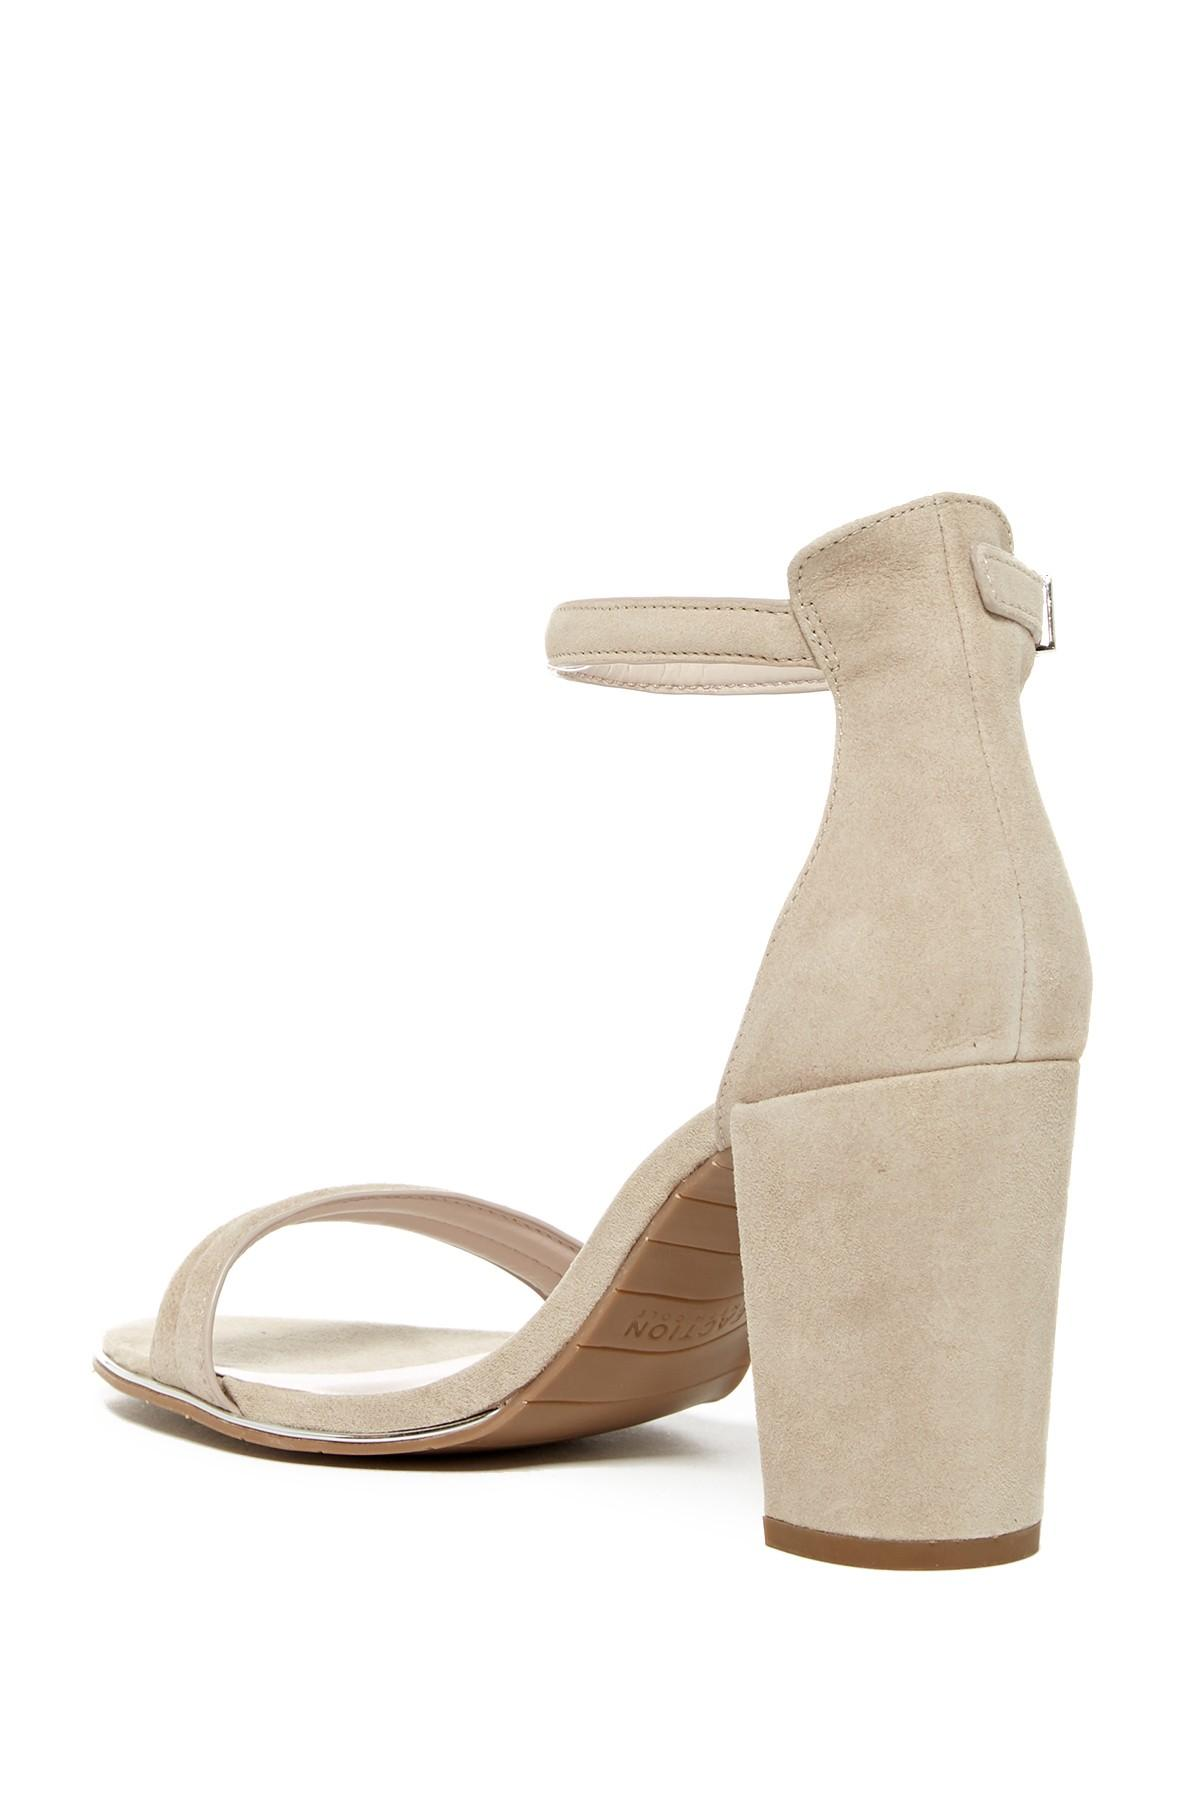 7f6f4b6ee25 Kenneth Cole Reaction - Natural Lolita Sandal - Lyst. View fullscreen